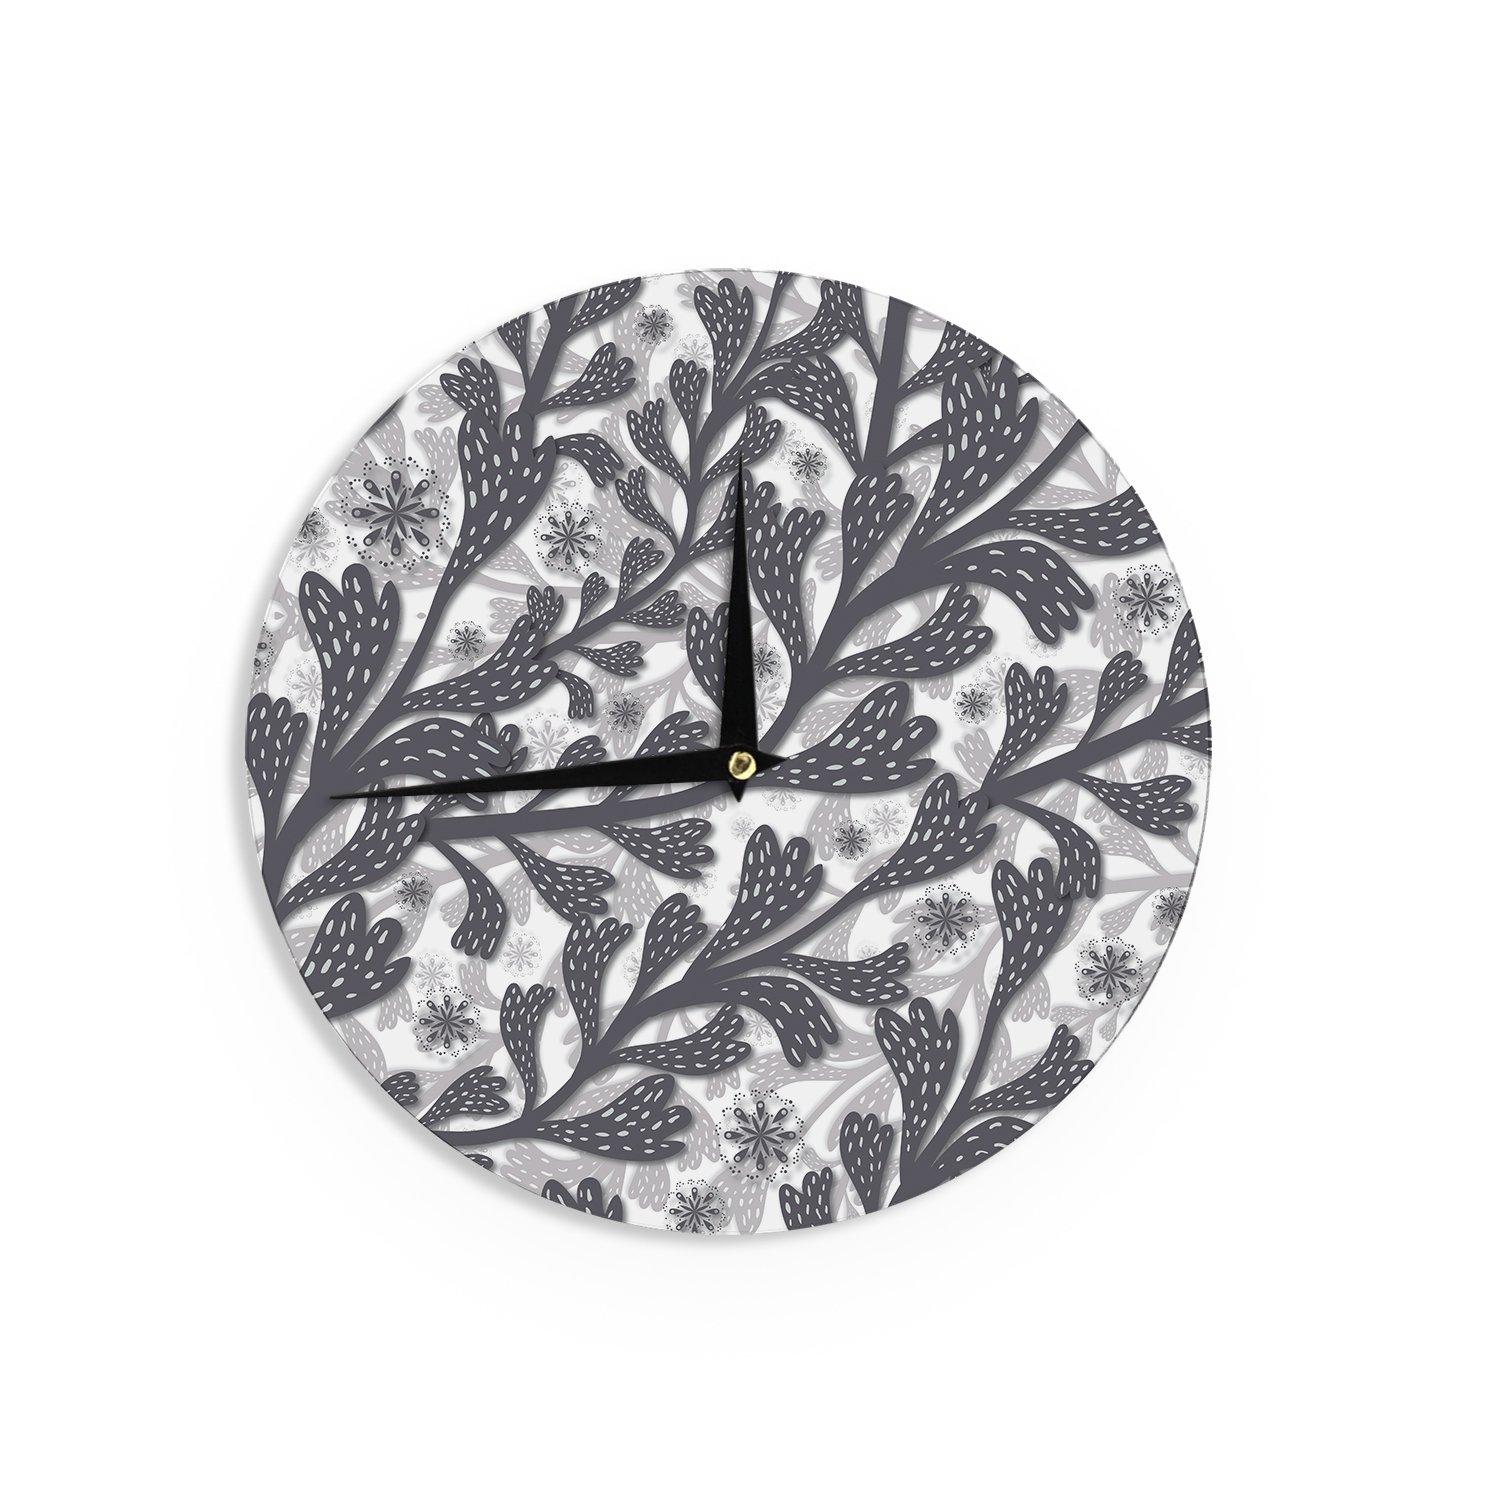 Kess InHouse Akwaflorell Snow Houses Gray Abstract Wall Clock 12' Diameter